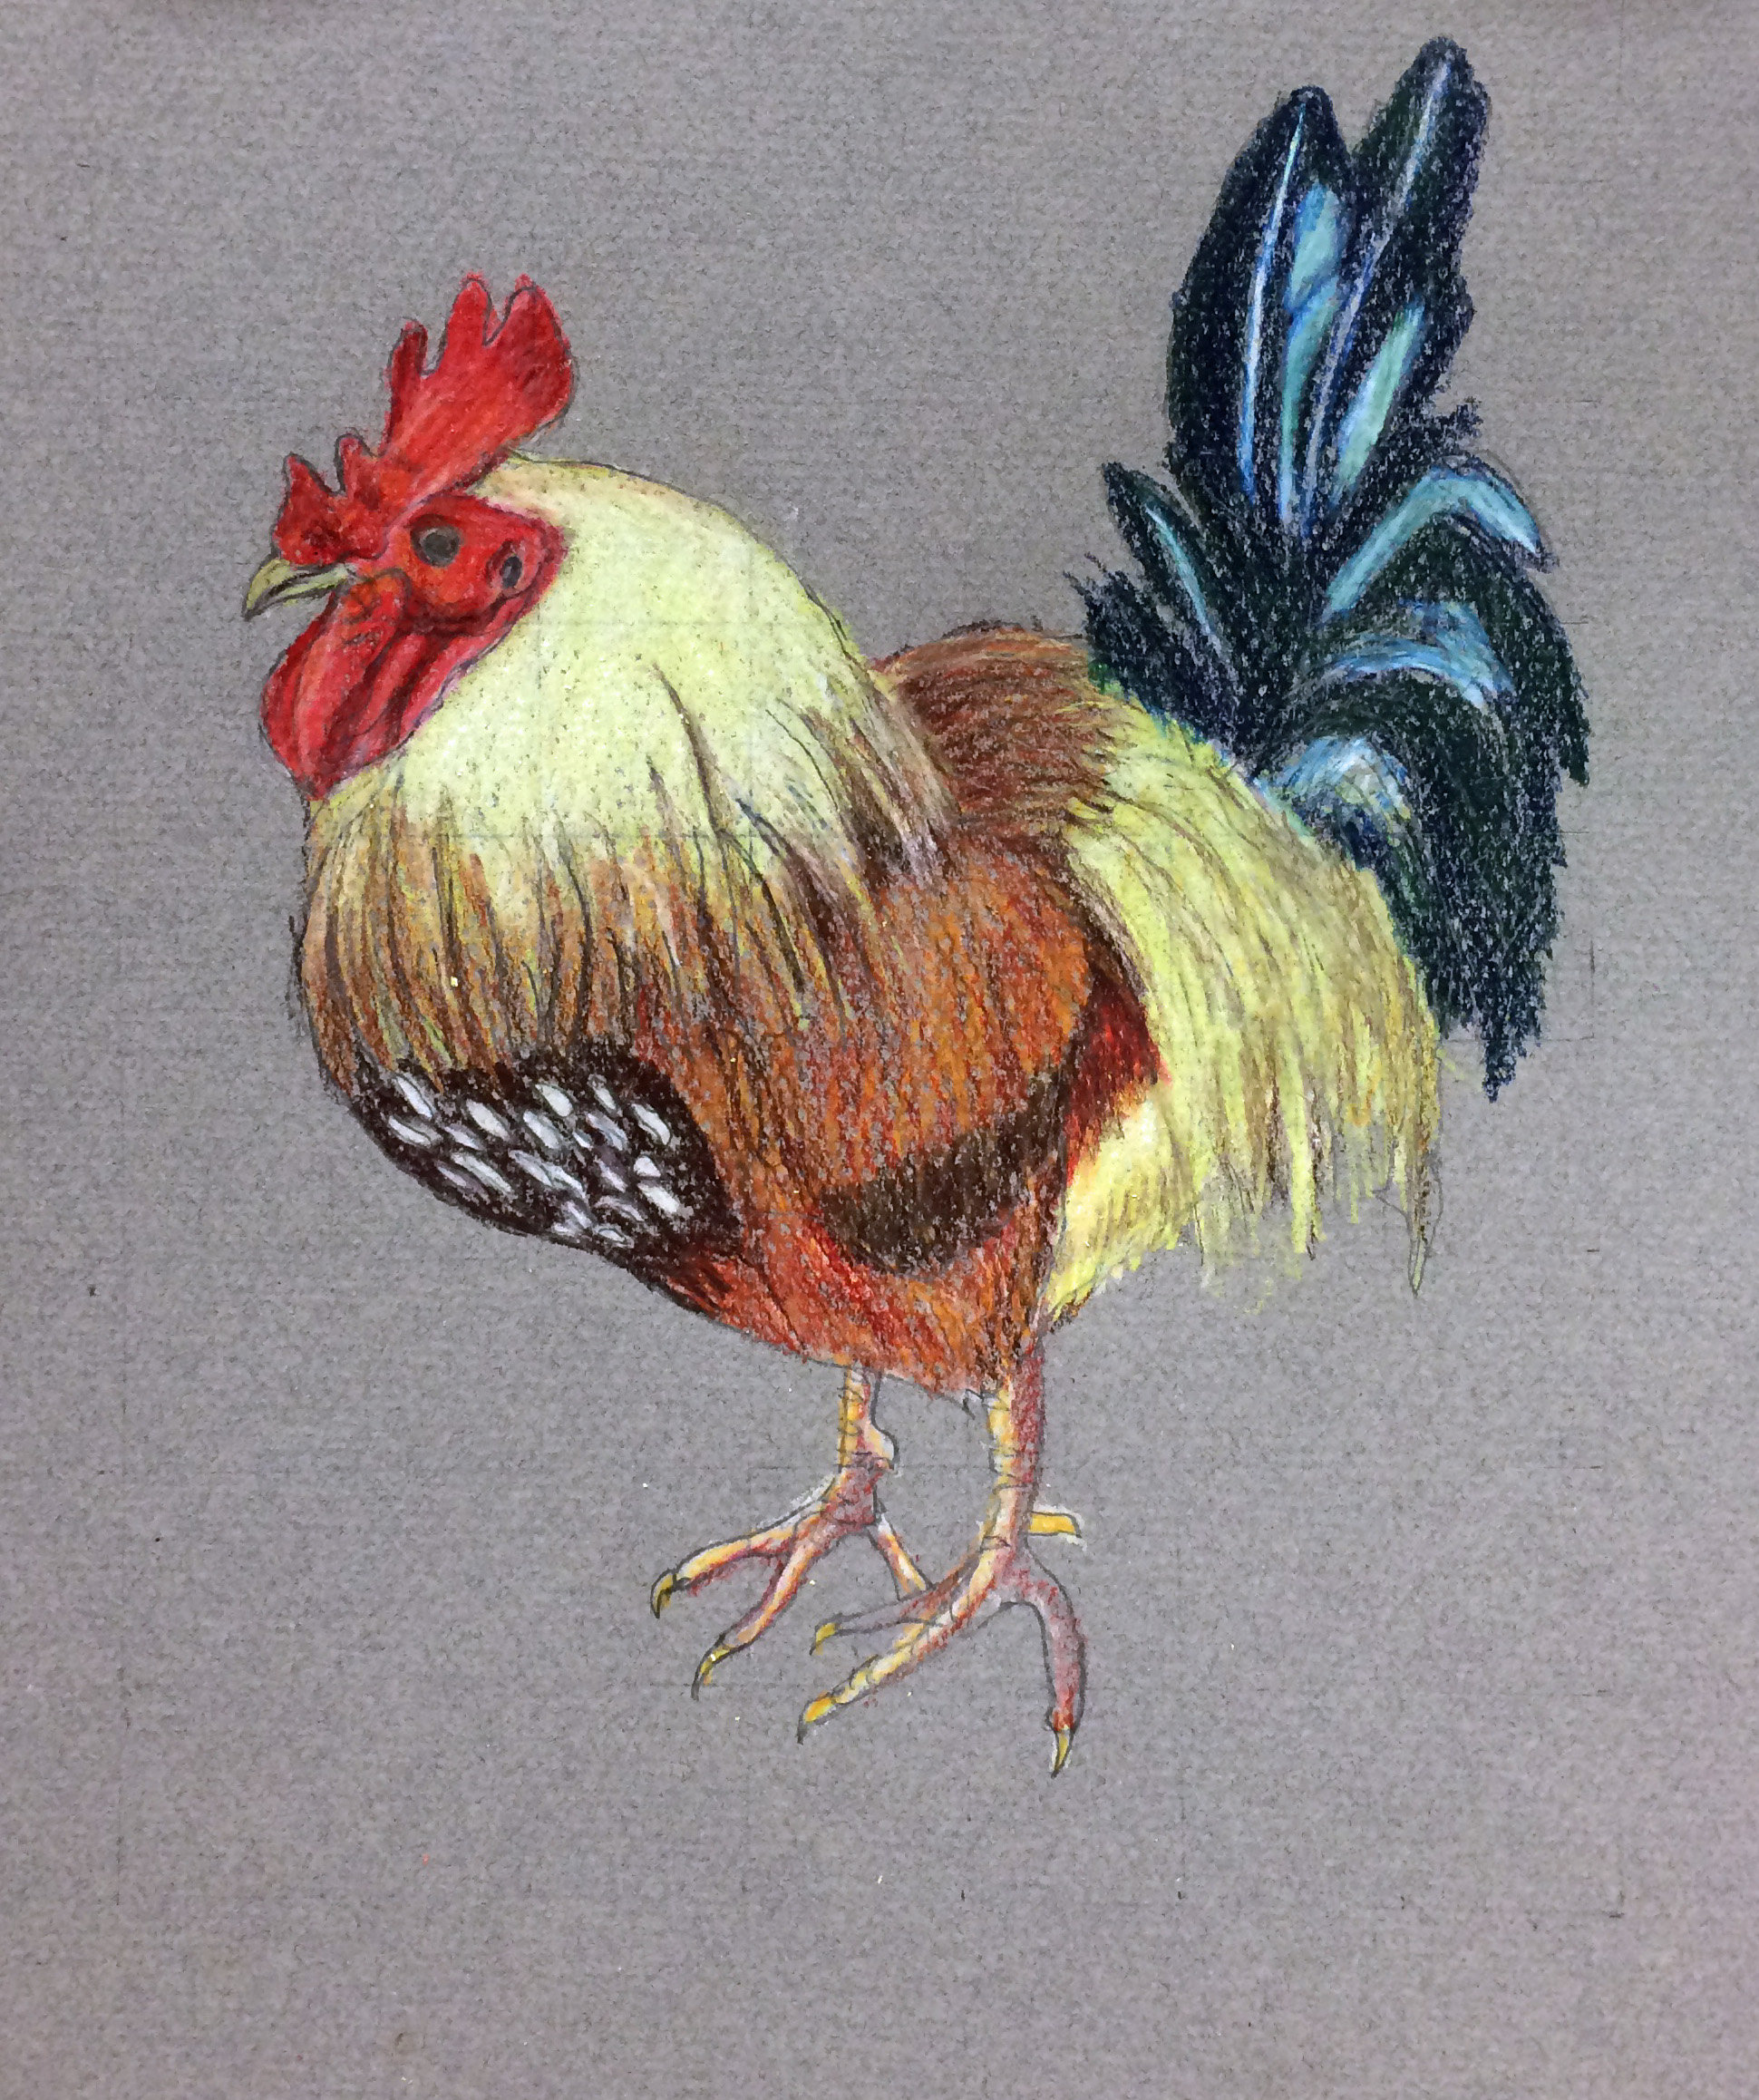 Drawn rooster colored pencil #8